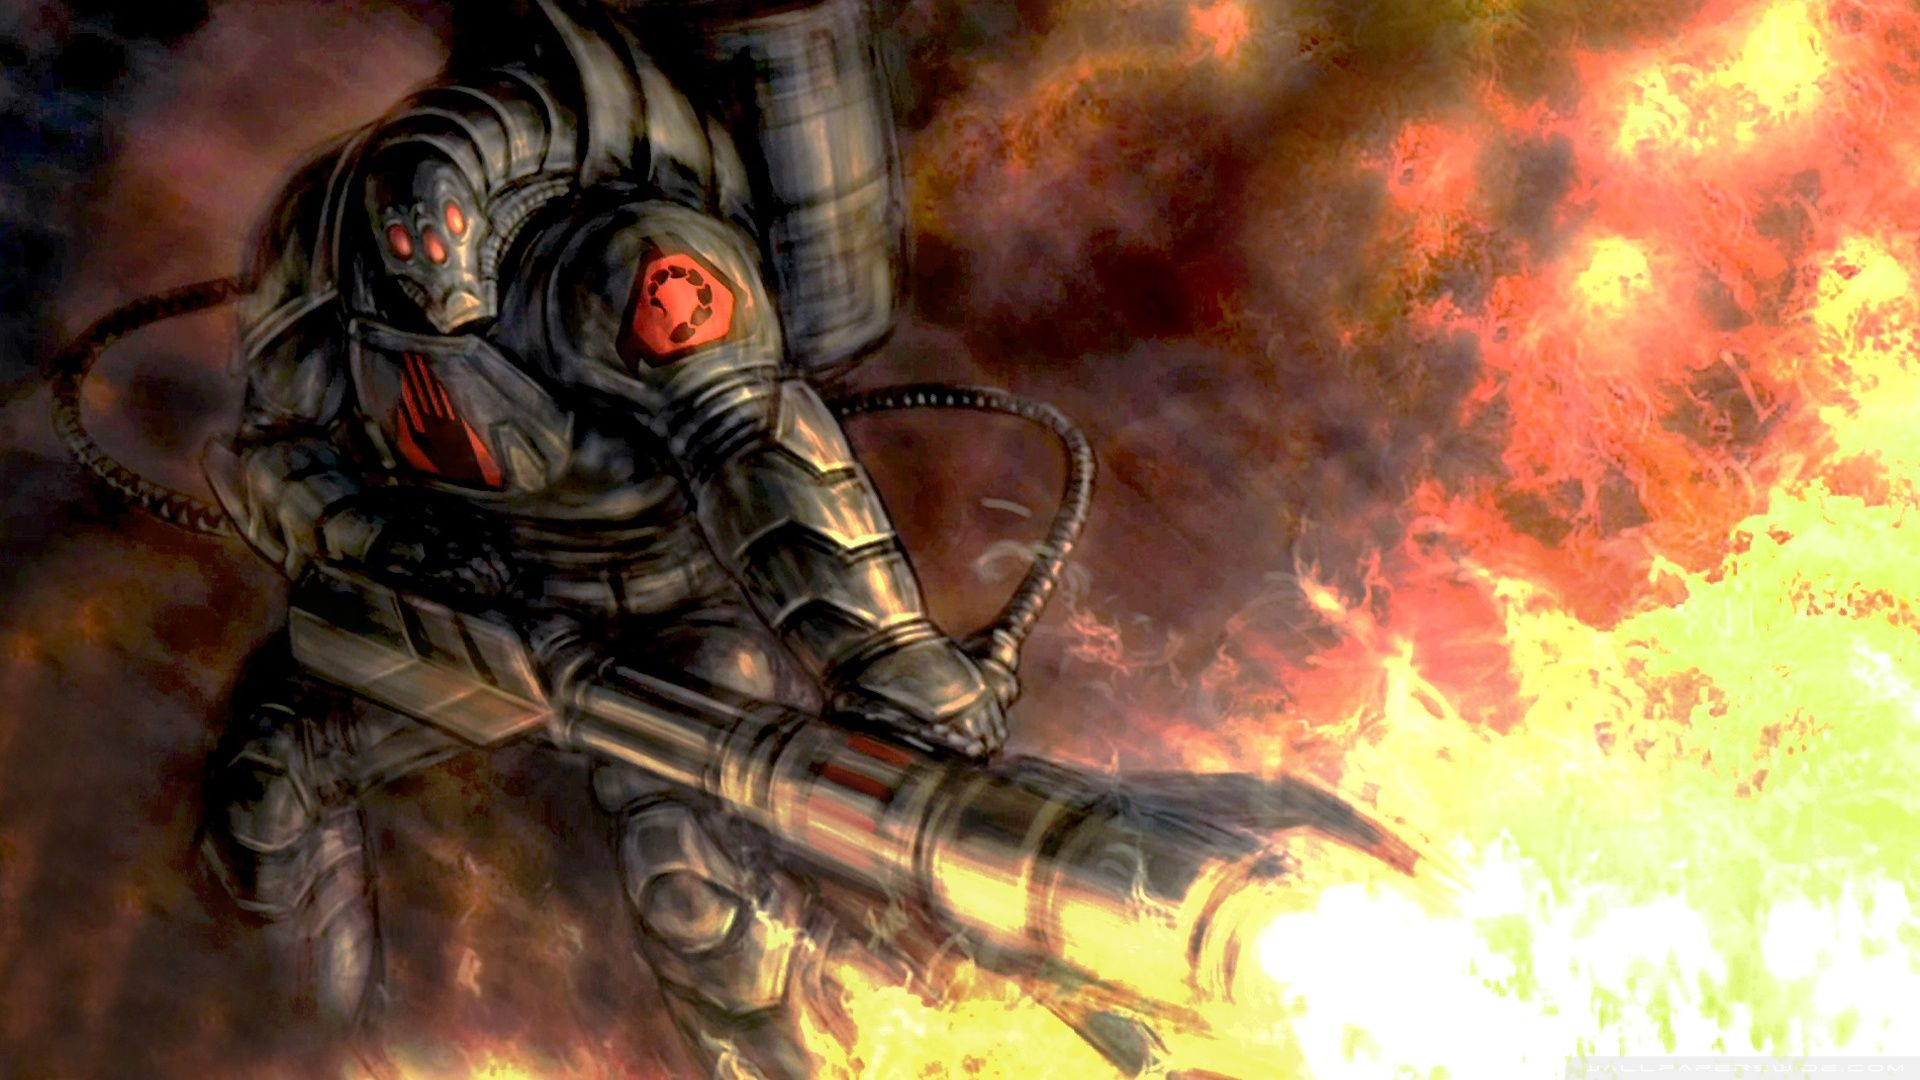 Command And Conquer Wallpaper: Command And Conquer Wallpaper